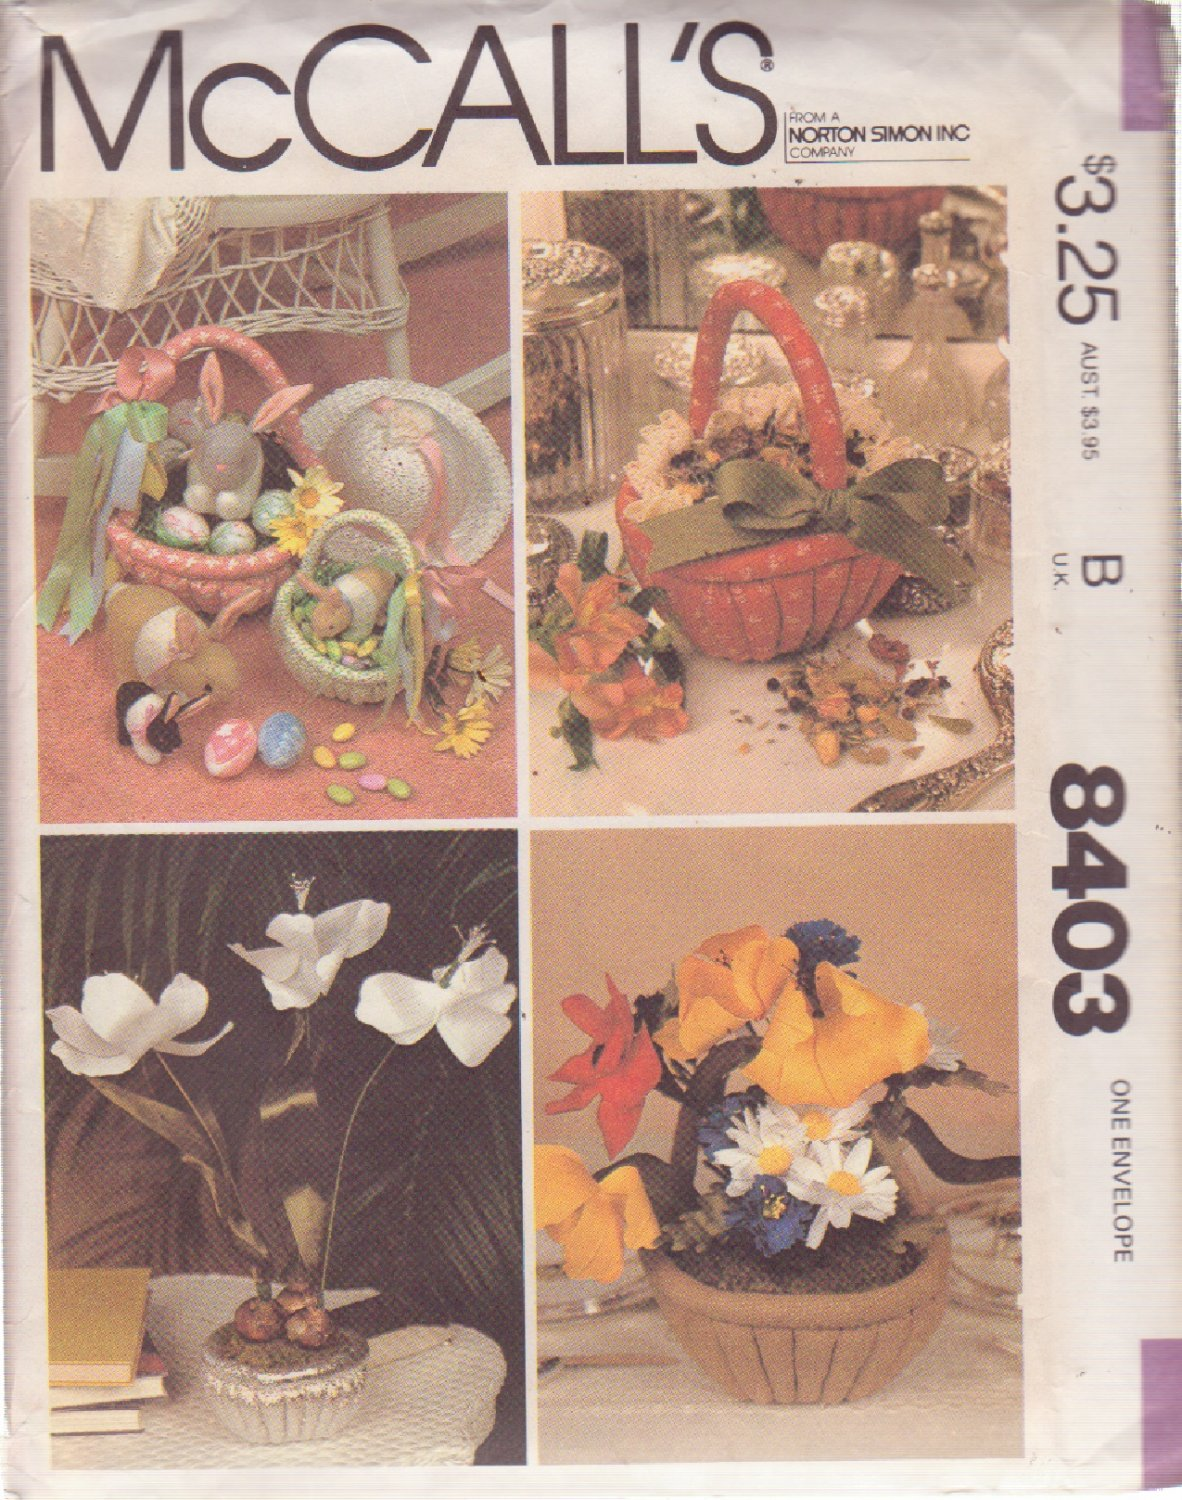 McCALL'S PATTERN 8403 DATED 1983 EASTER CRAFT PACKAGE, BASKETS,BUNNIES,FLOWERS